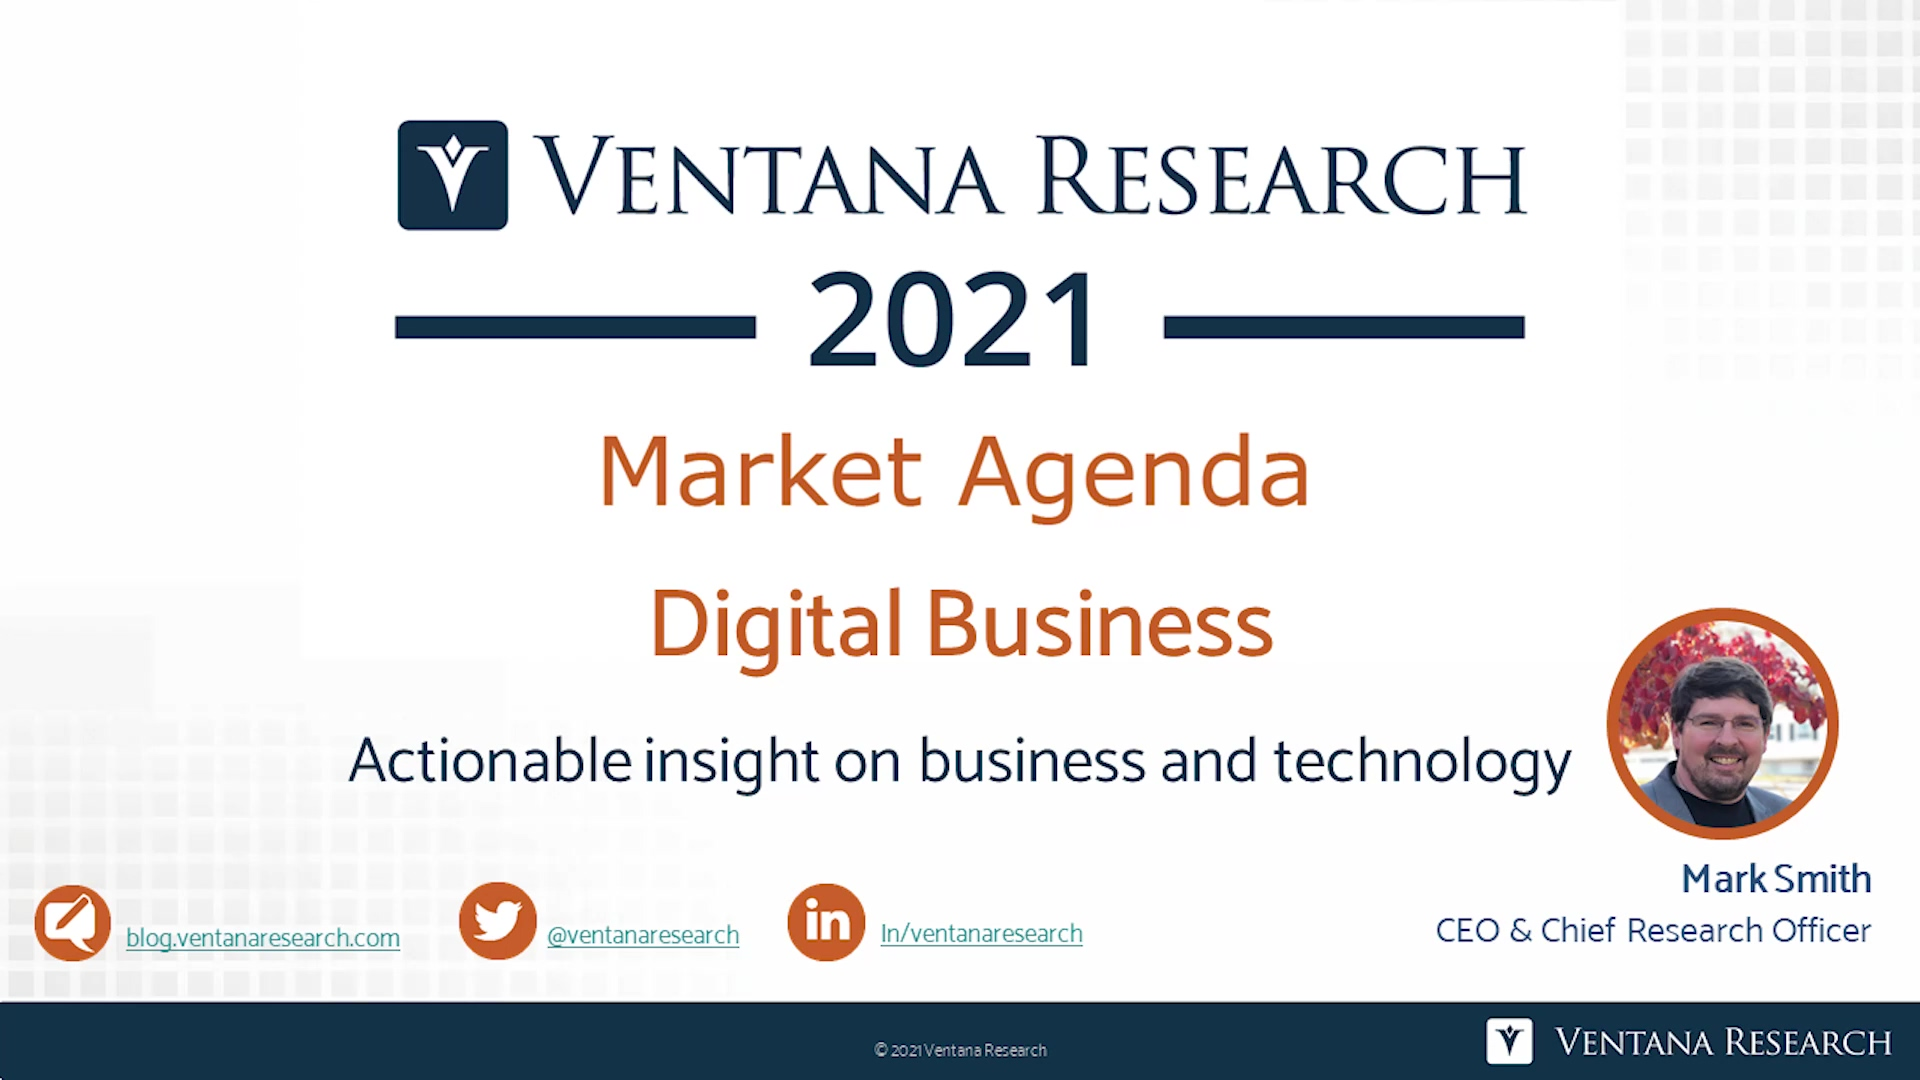 Ventana Research 2021 Market Agenda for Digital Business